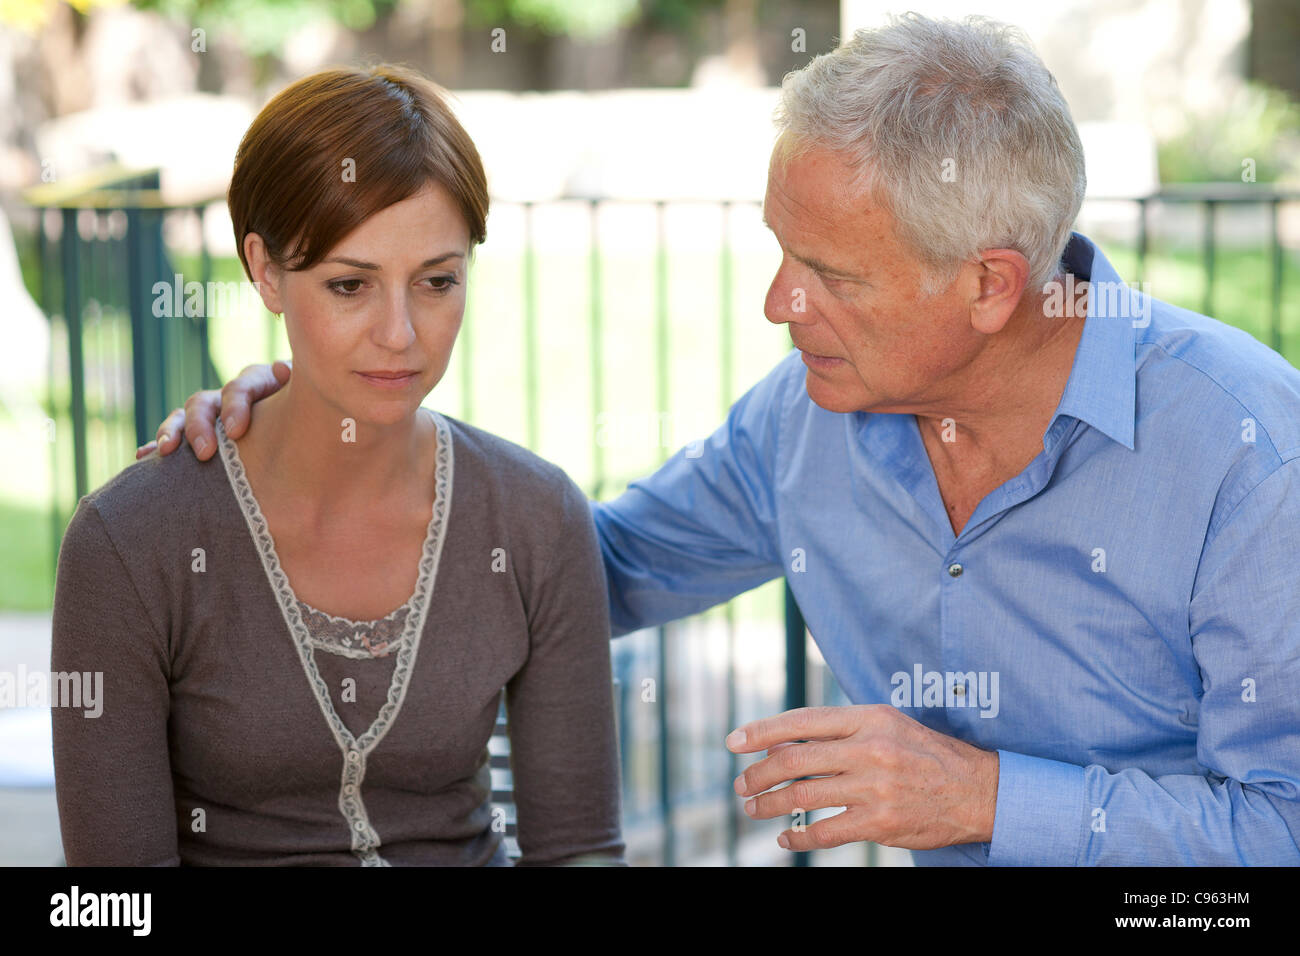 Absence seizure. Man looking after a woman who is having an absence seizure. - Stock Image